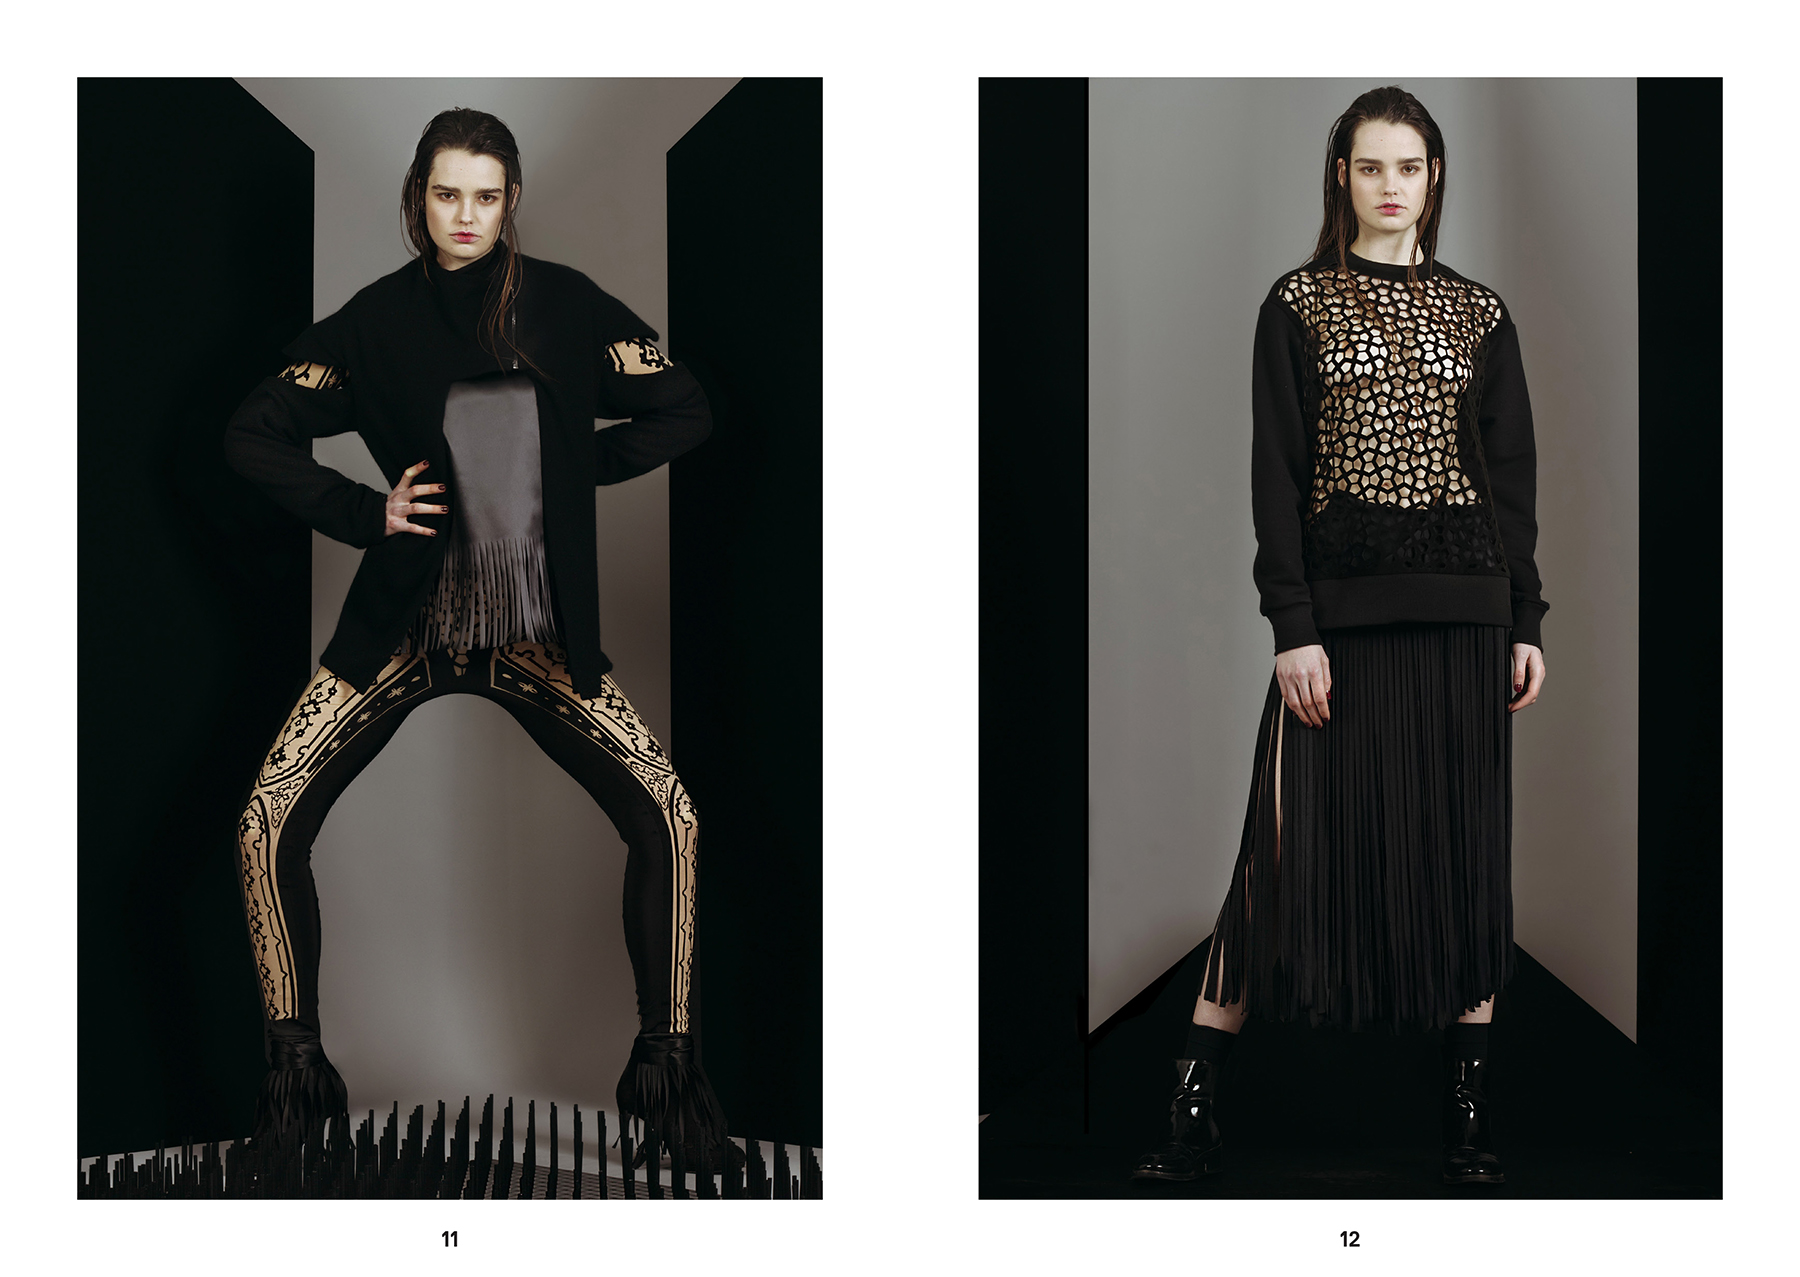 aw15_lookbook_digital_HIRES-7